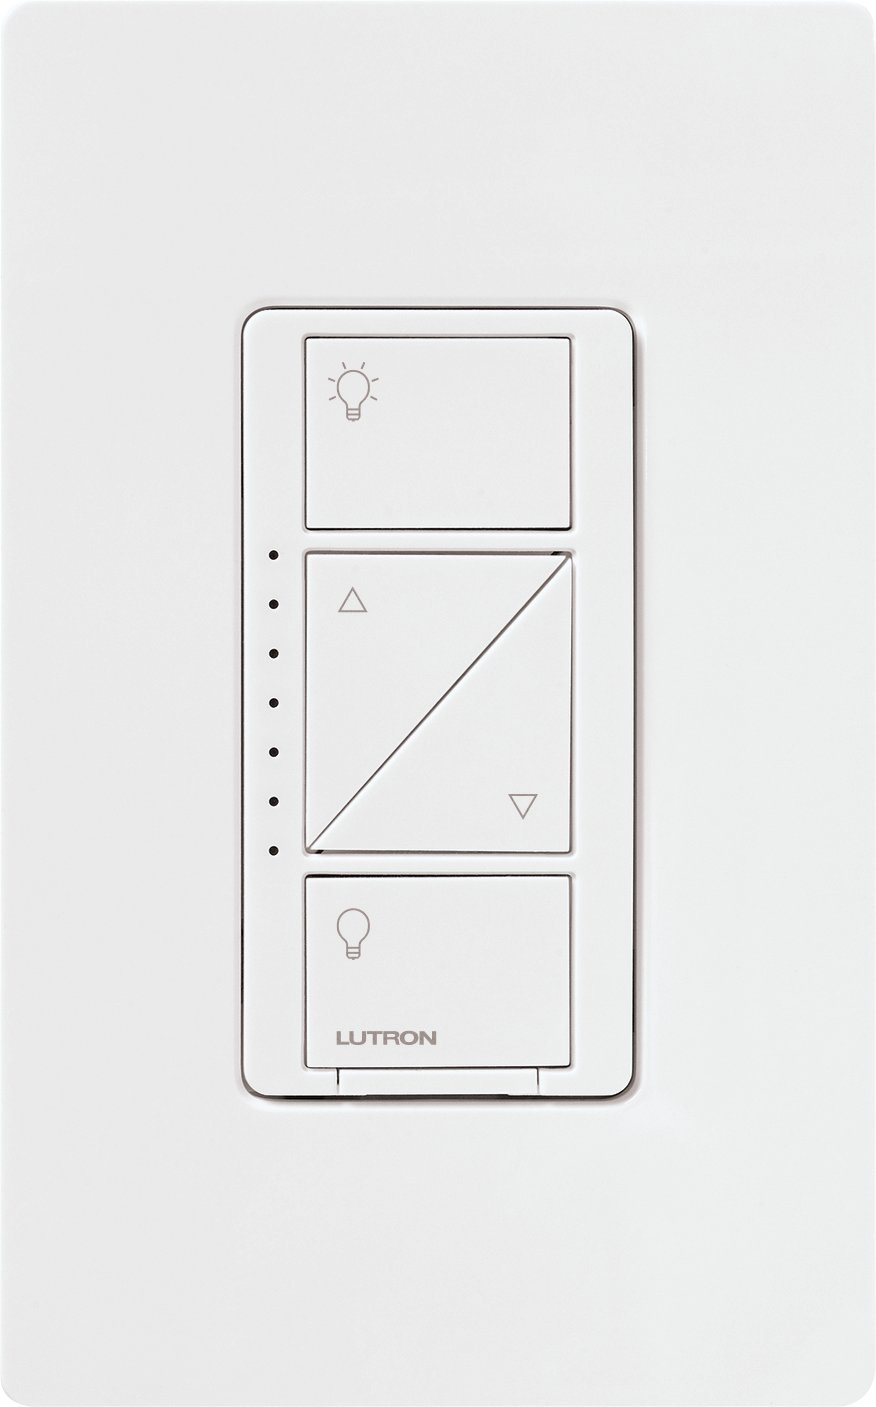 Lutron Caseta Wireless Smart Lighting Dimmer Switch And Remote Kit Below Diagram Shows How To Wire The Led Lights For Wall Ceiling P Pkg1w Wh White Works With Alexa Apple Homekit